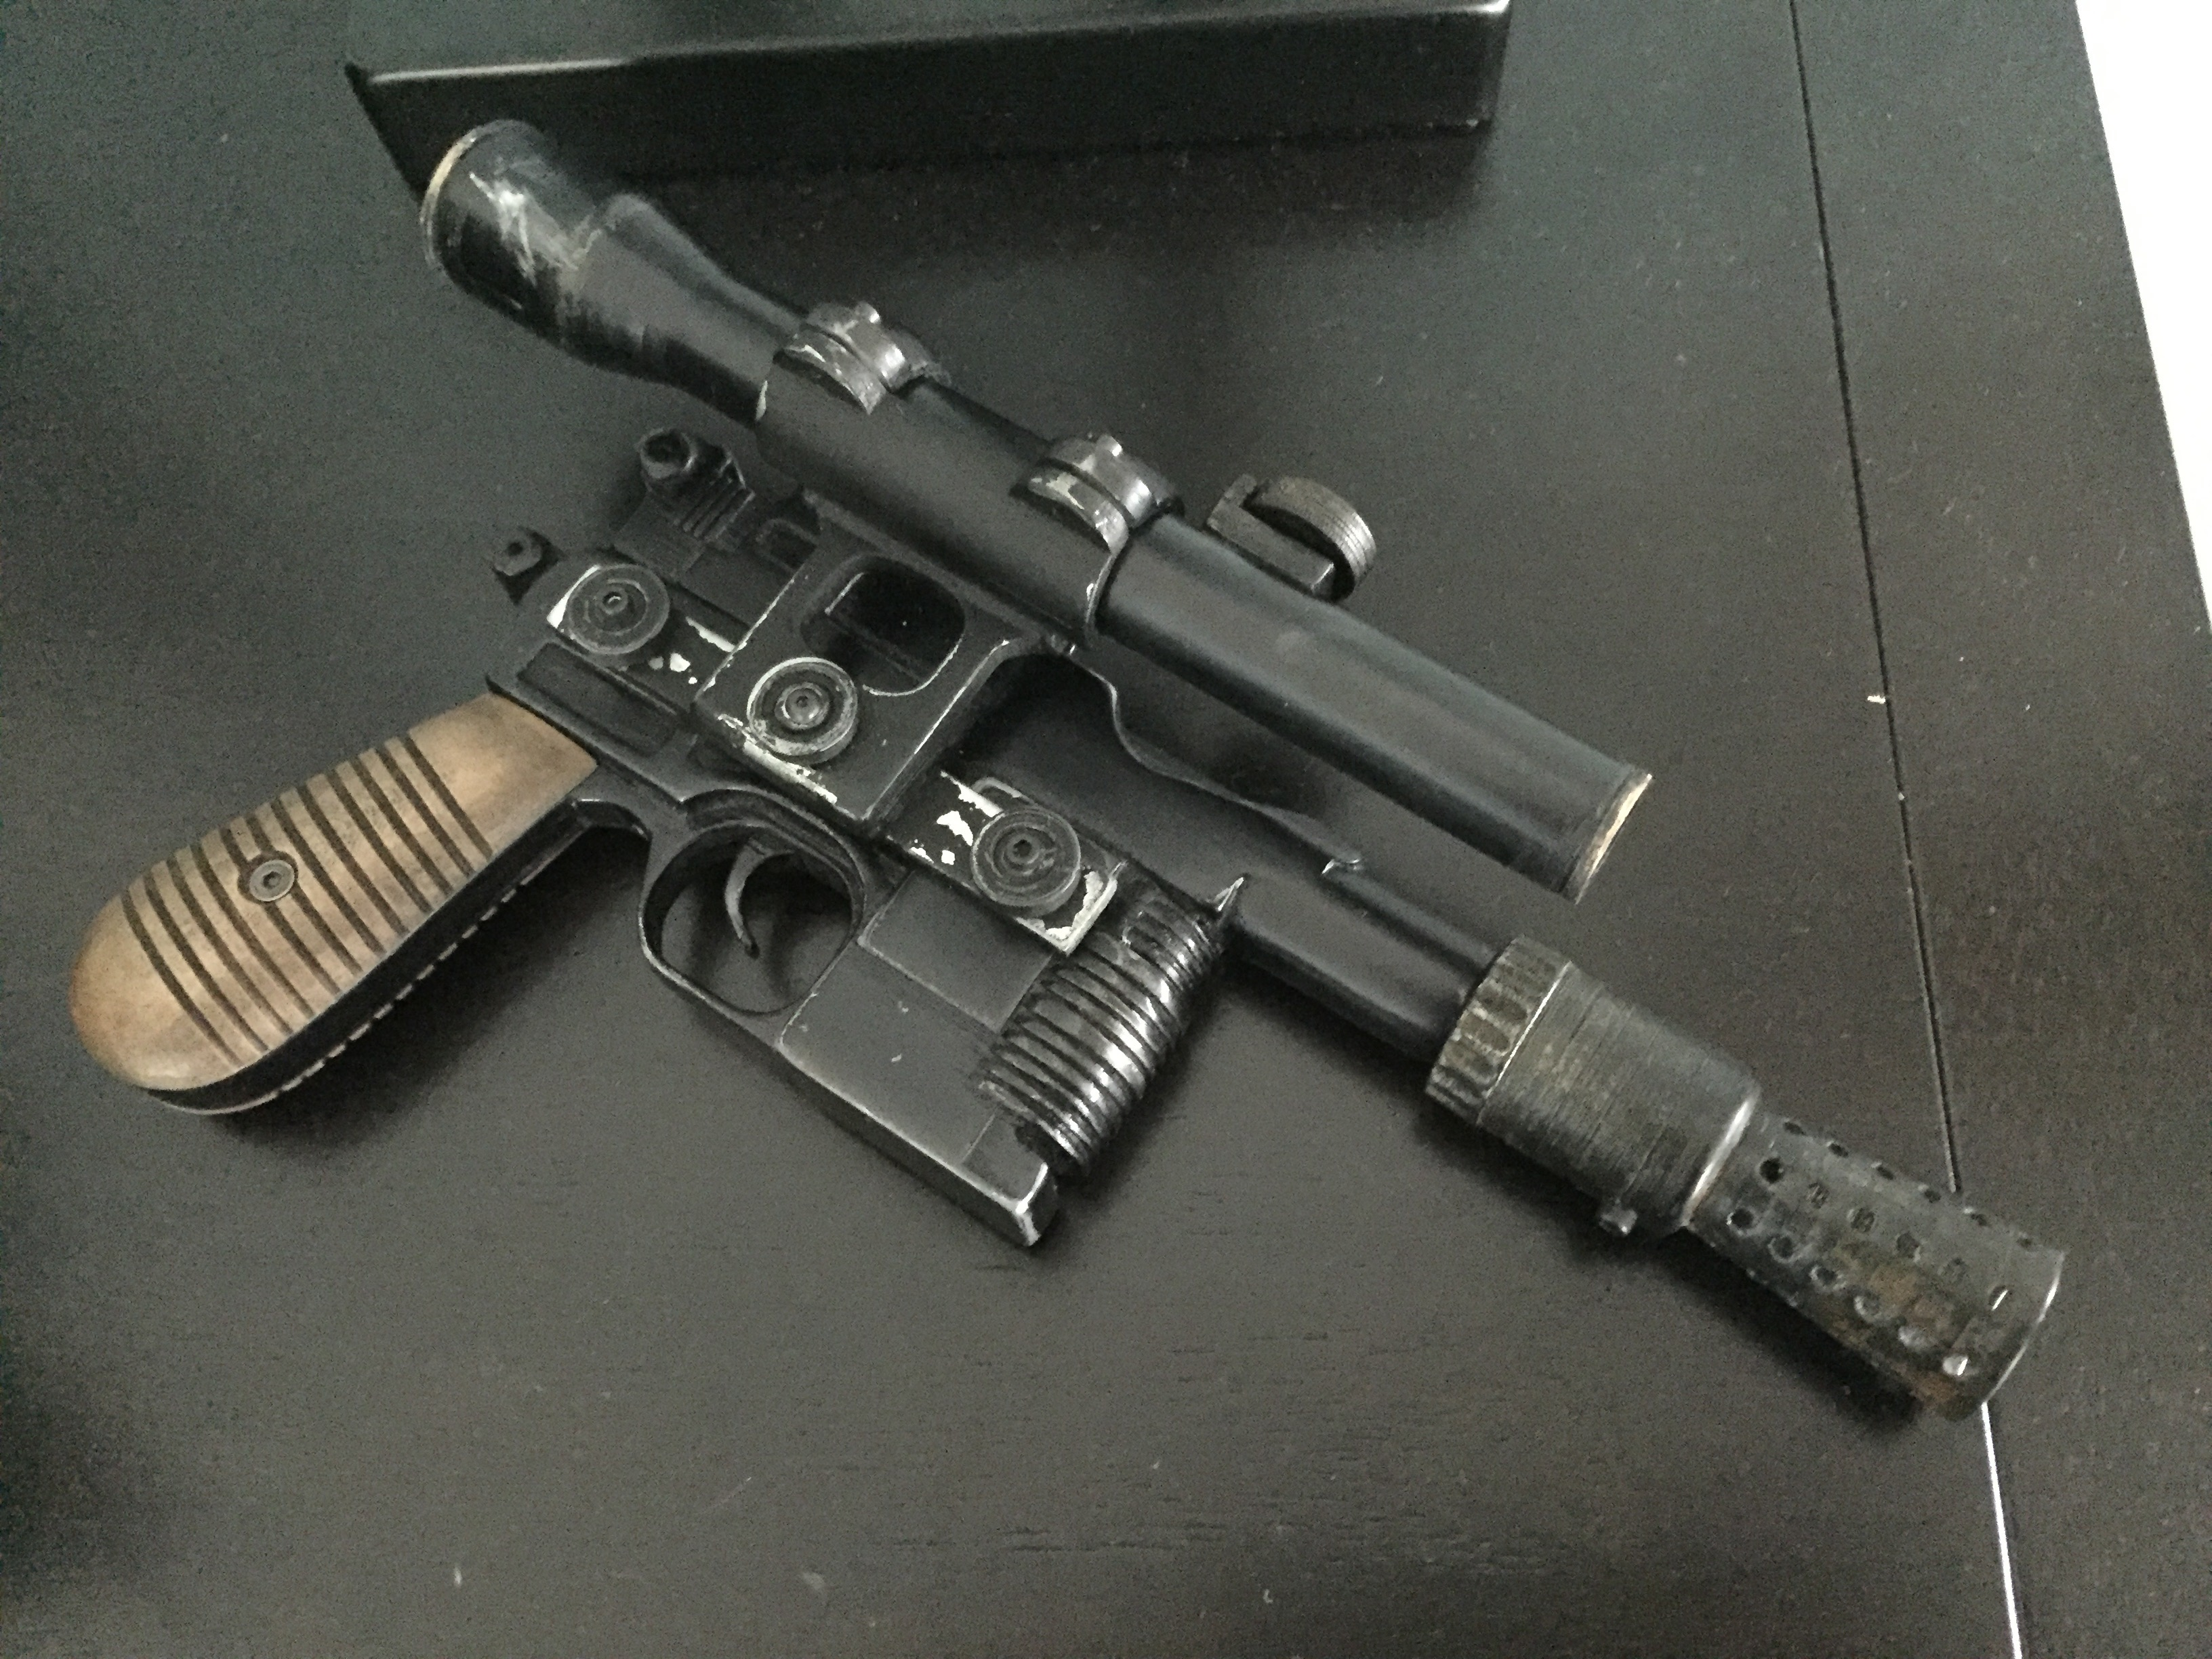 Han Solo Blaster (DL-44) by theFPVgeek - Thingiverse